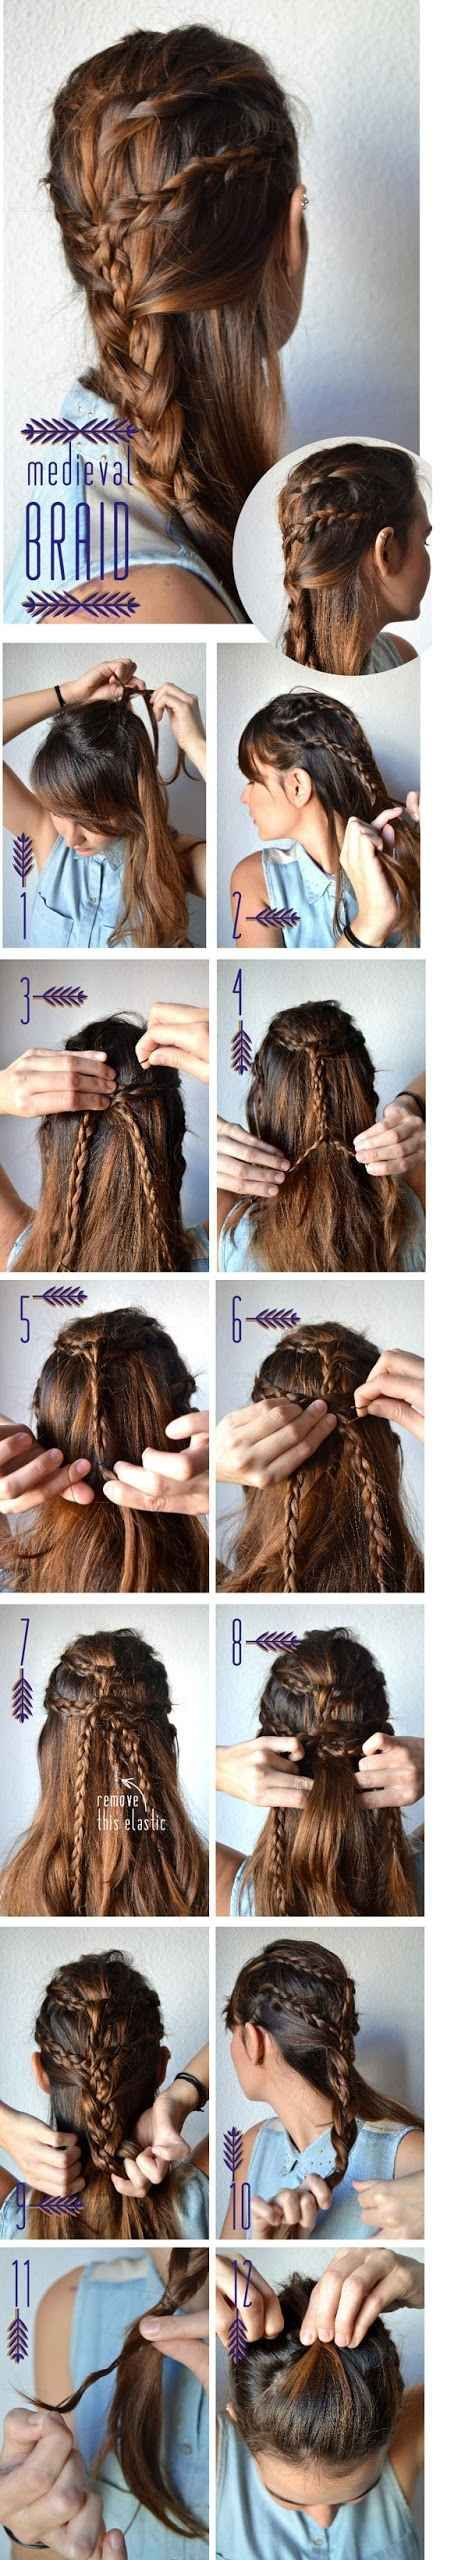 Medieval braid hair ideas to step up your halloween costume